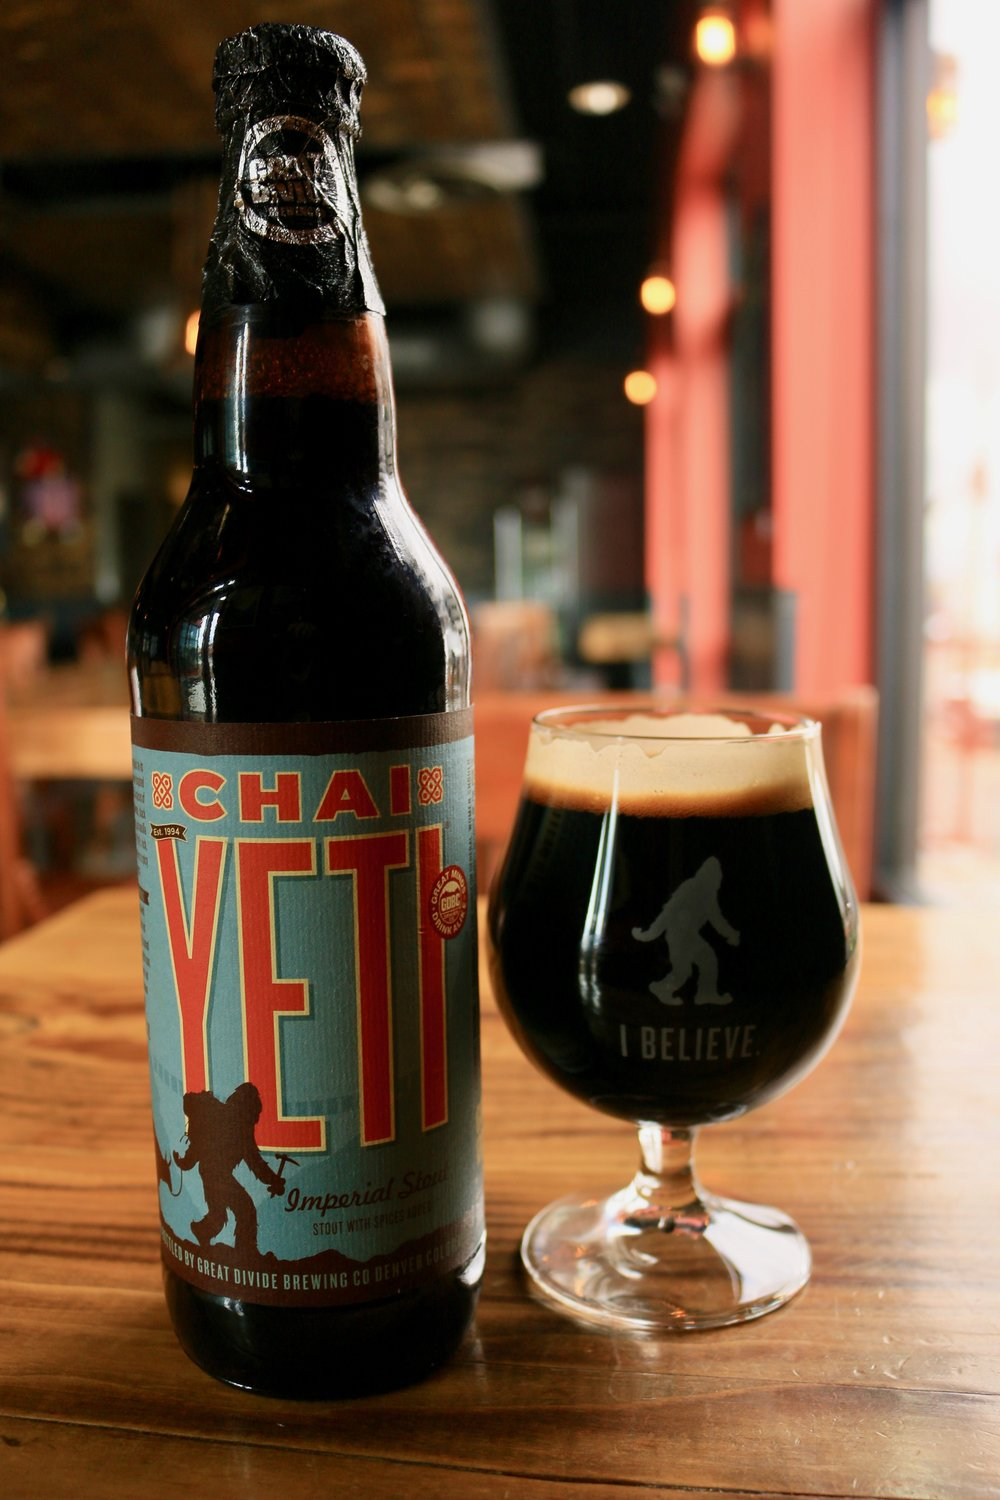 image courtesy Great Divide Brewing Company